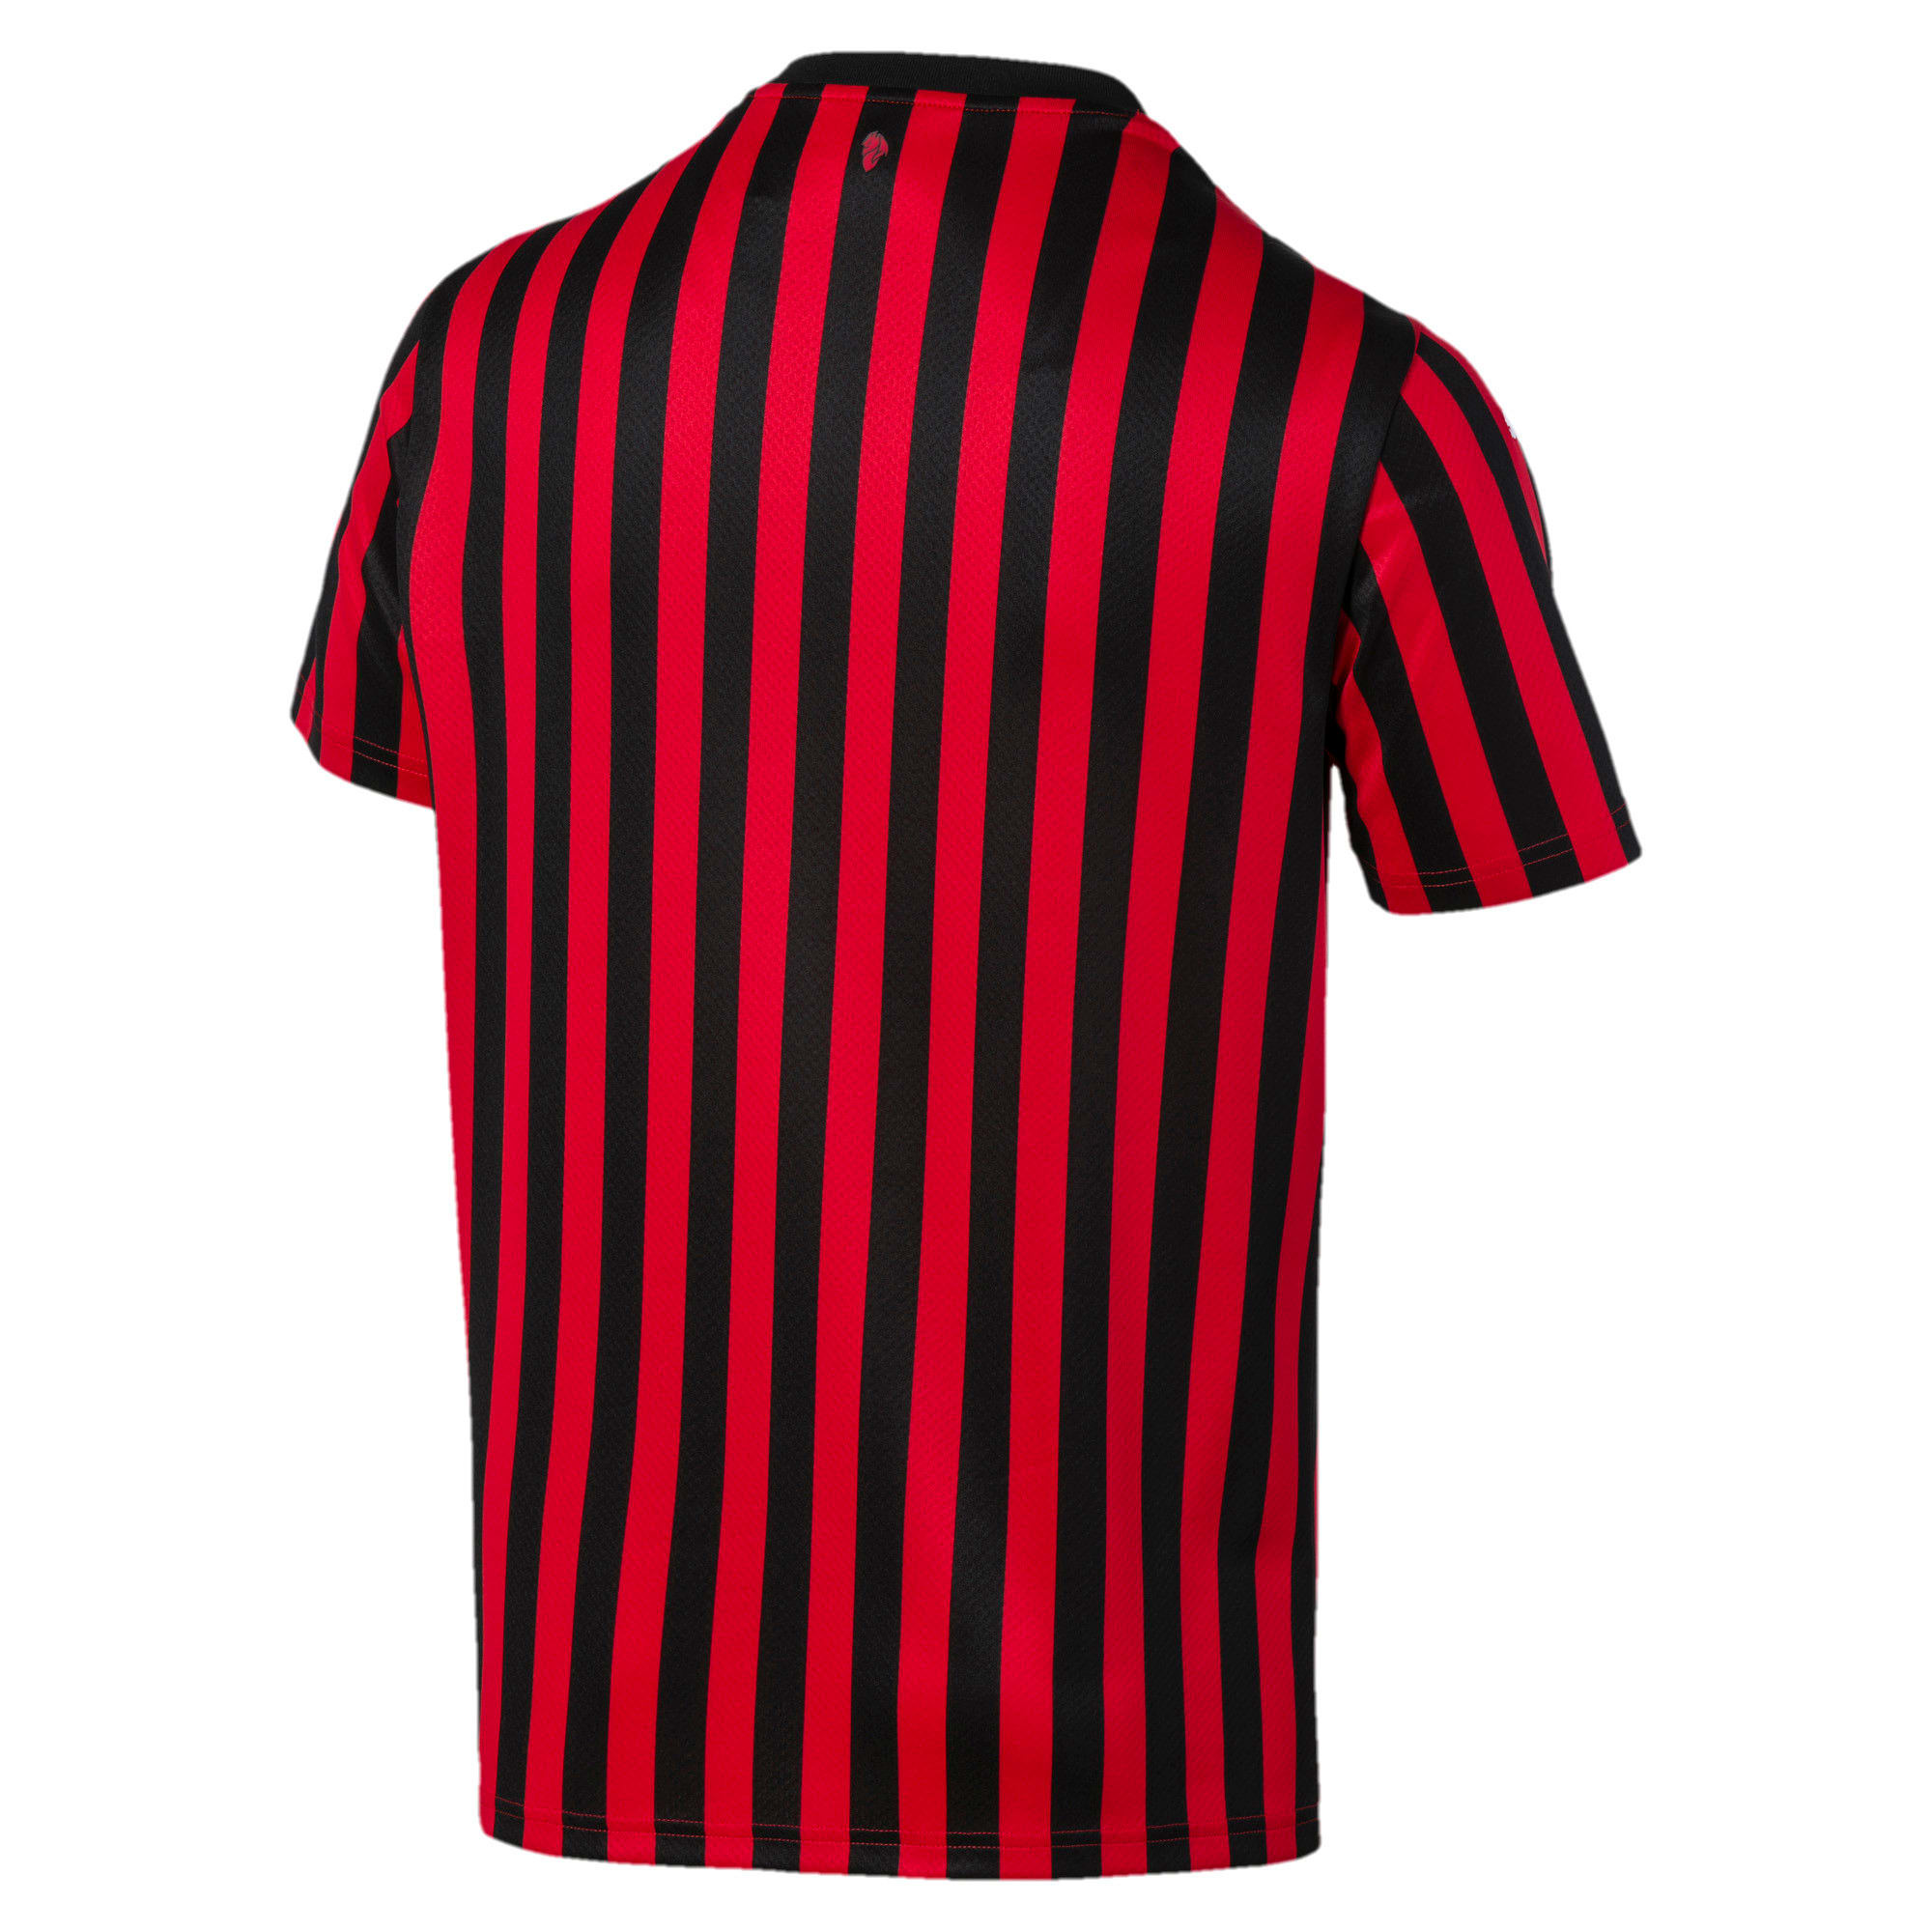 Thumbnail 2 of AC Milan Men's Home Replica Jersey, Tango Red -Puma Black, medium